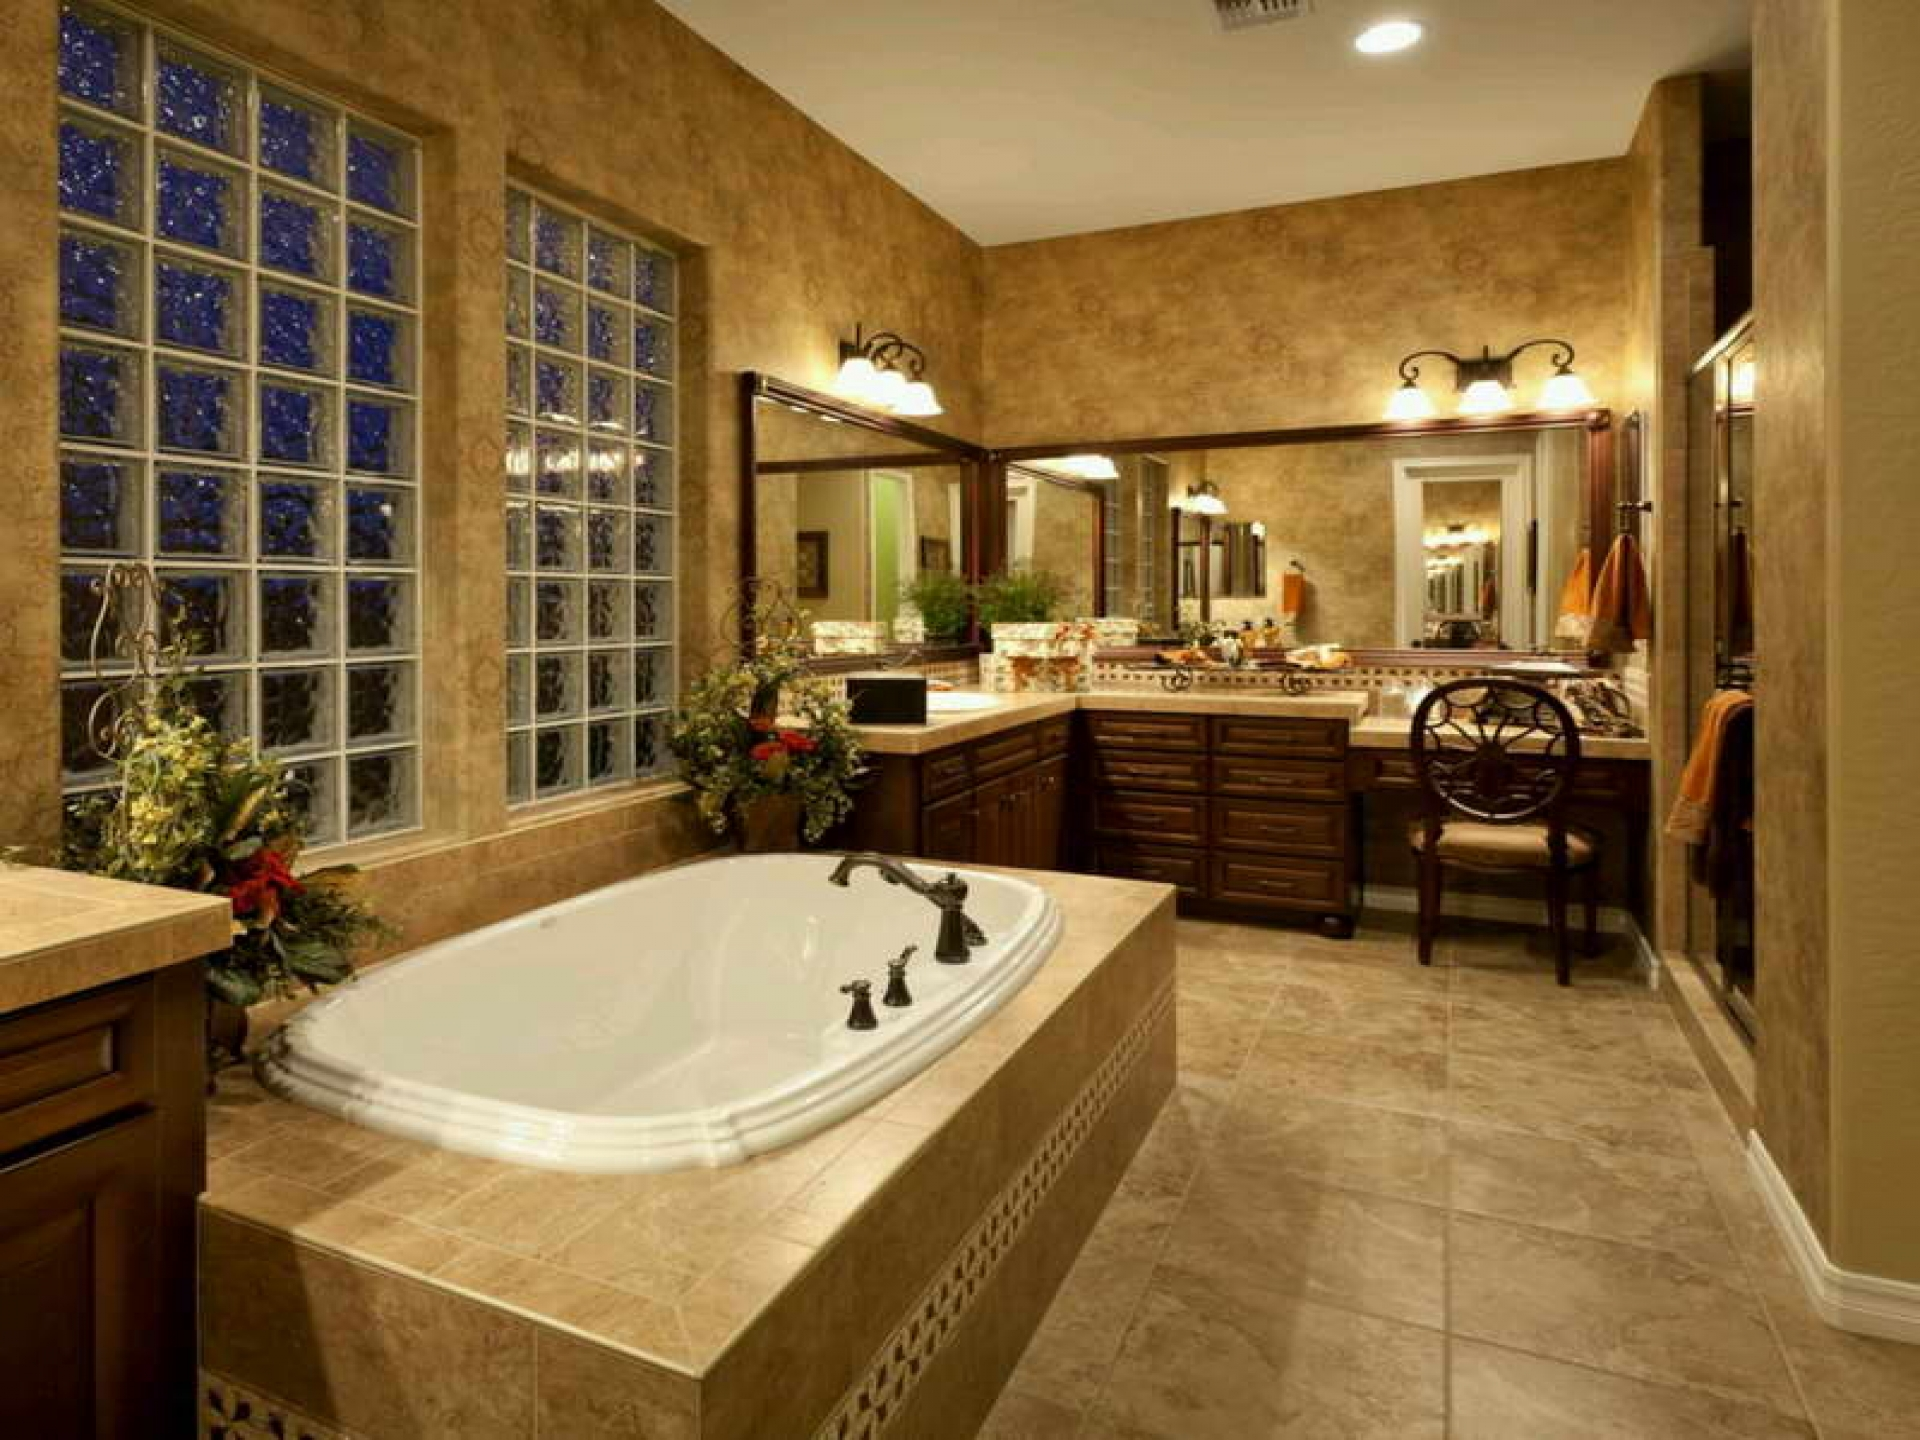 100 amazing bathroom ideas you 39 ll fall in love with for Beautiful bathrooms